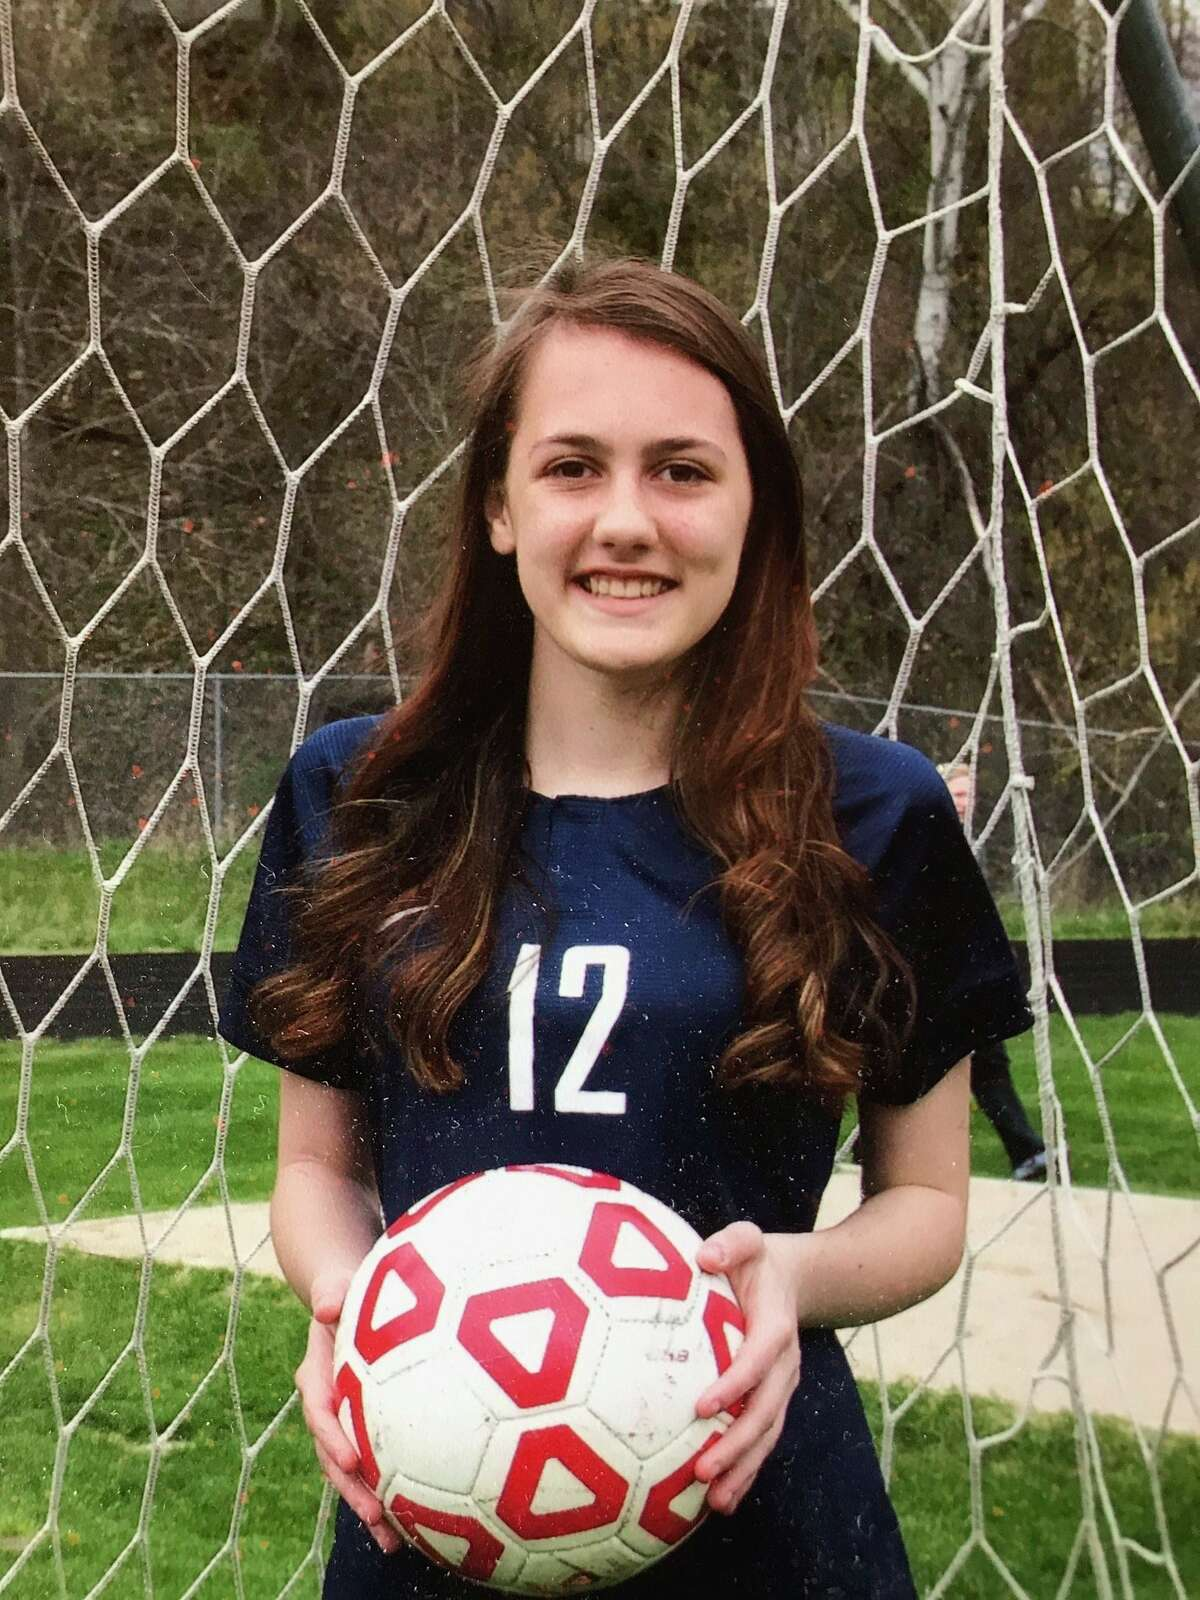 Ashylnn McNeilly would have been in hersophomore season for Crossroads soccer this spring. (Courtesy photo)